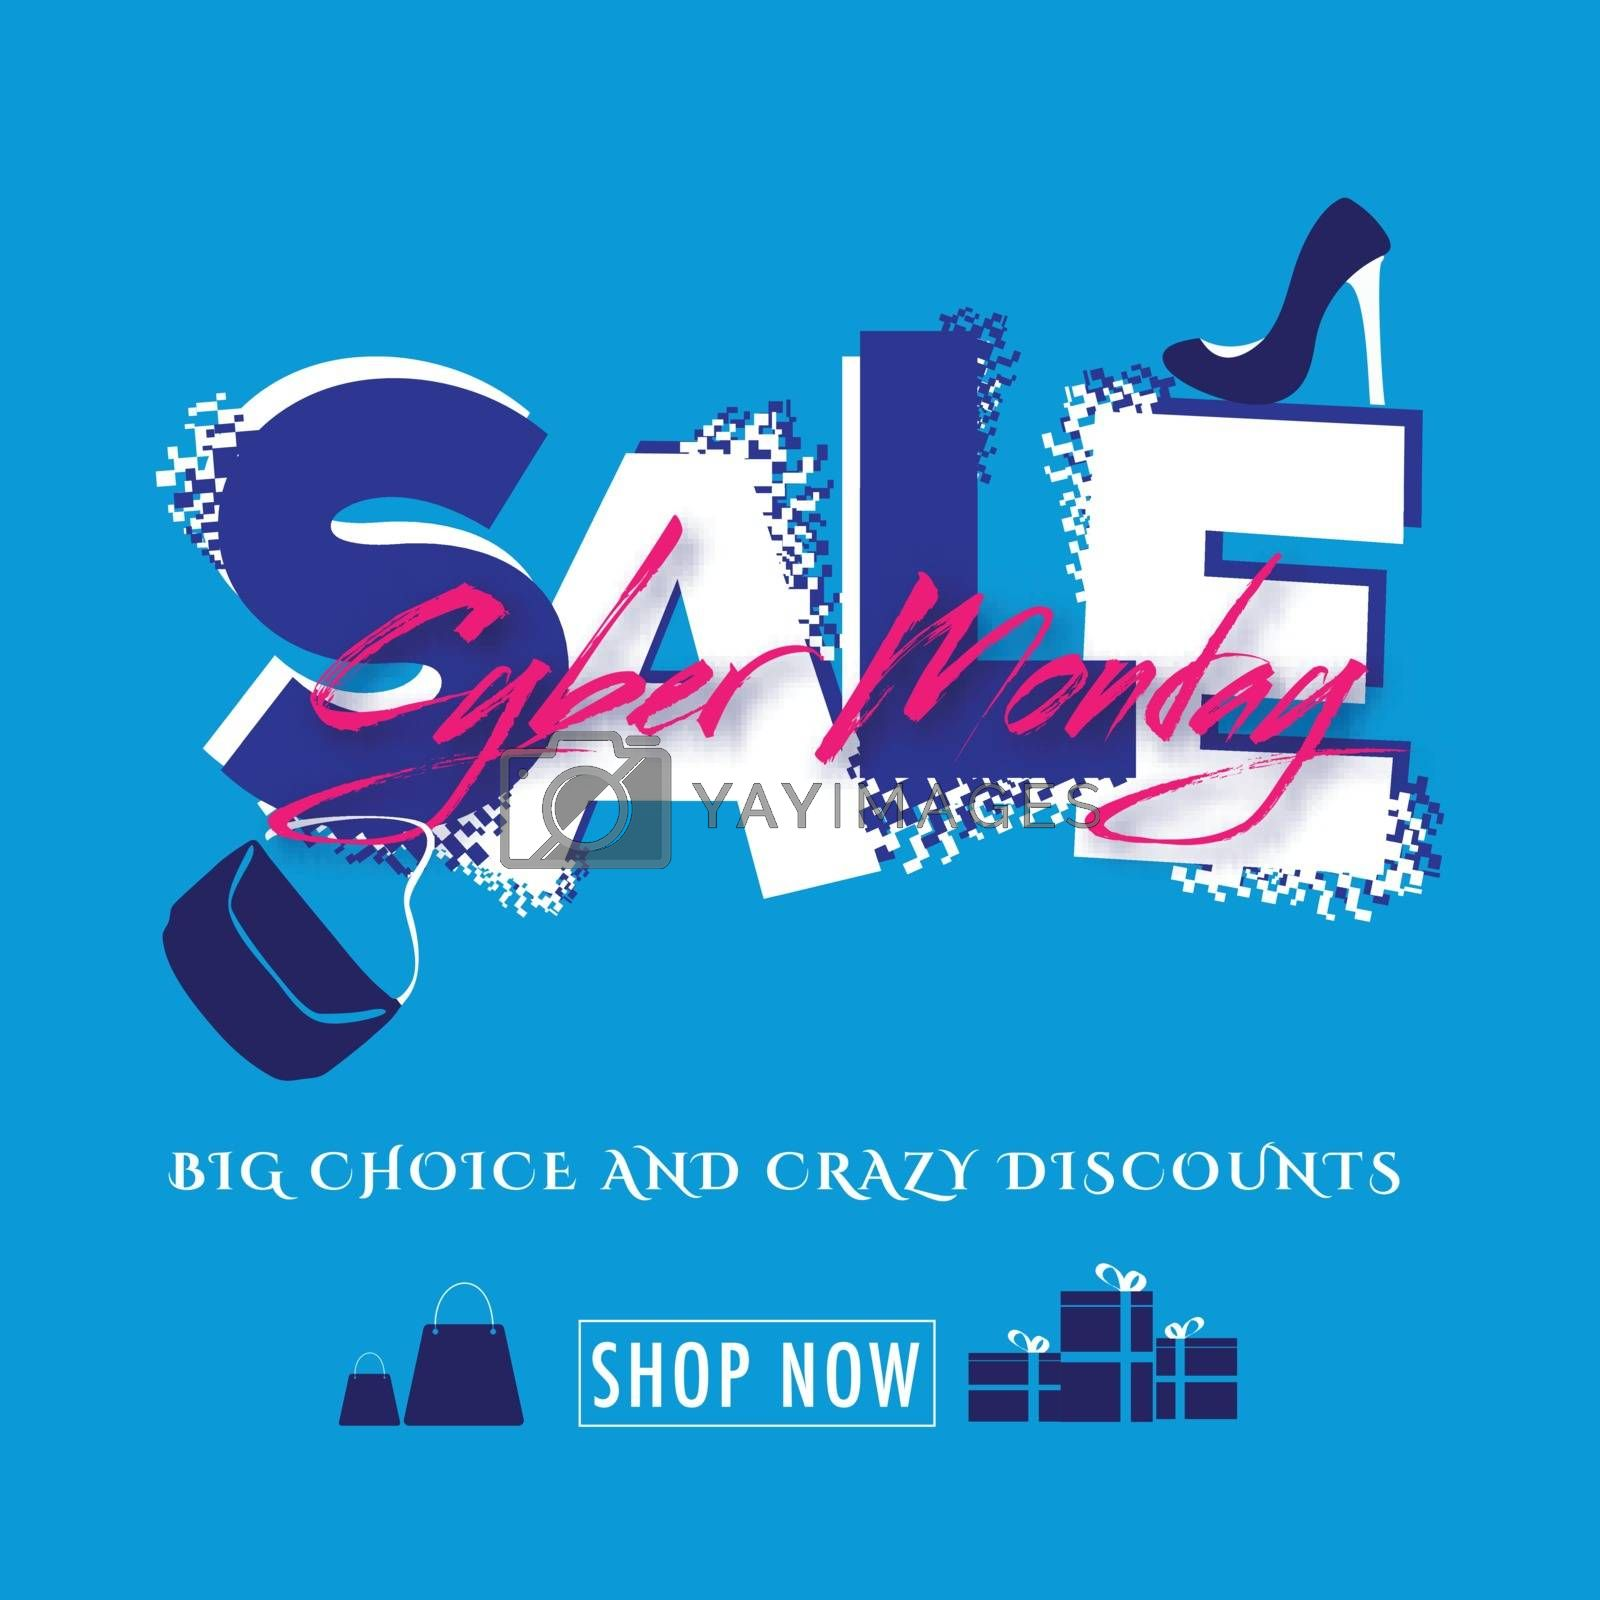 Advertising template or flyer design with creative lettering of Cyber Monday Sale on blue background.